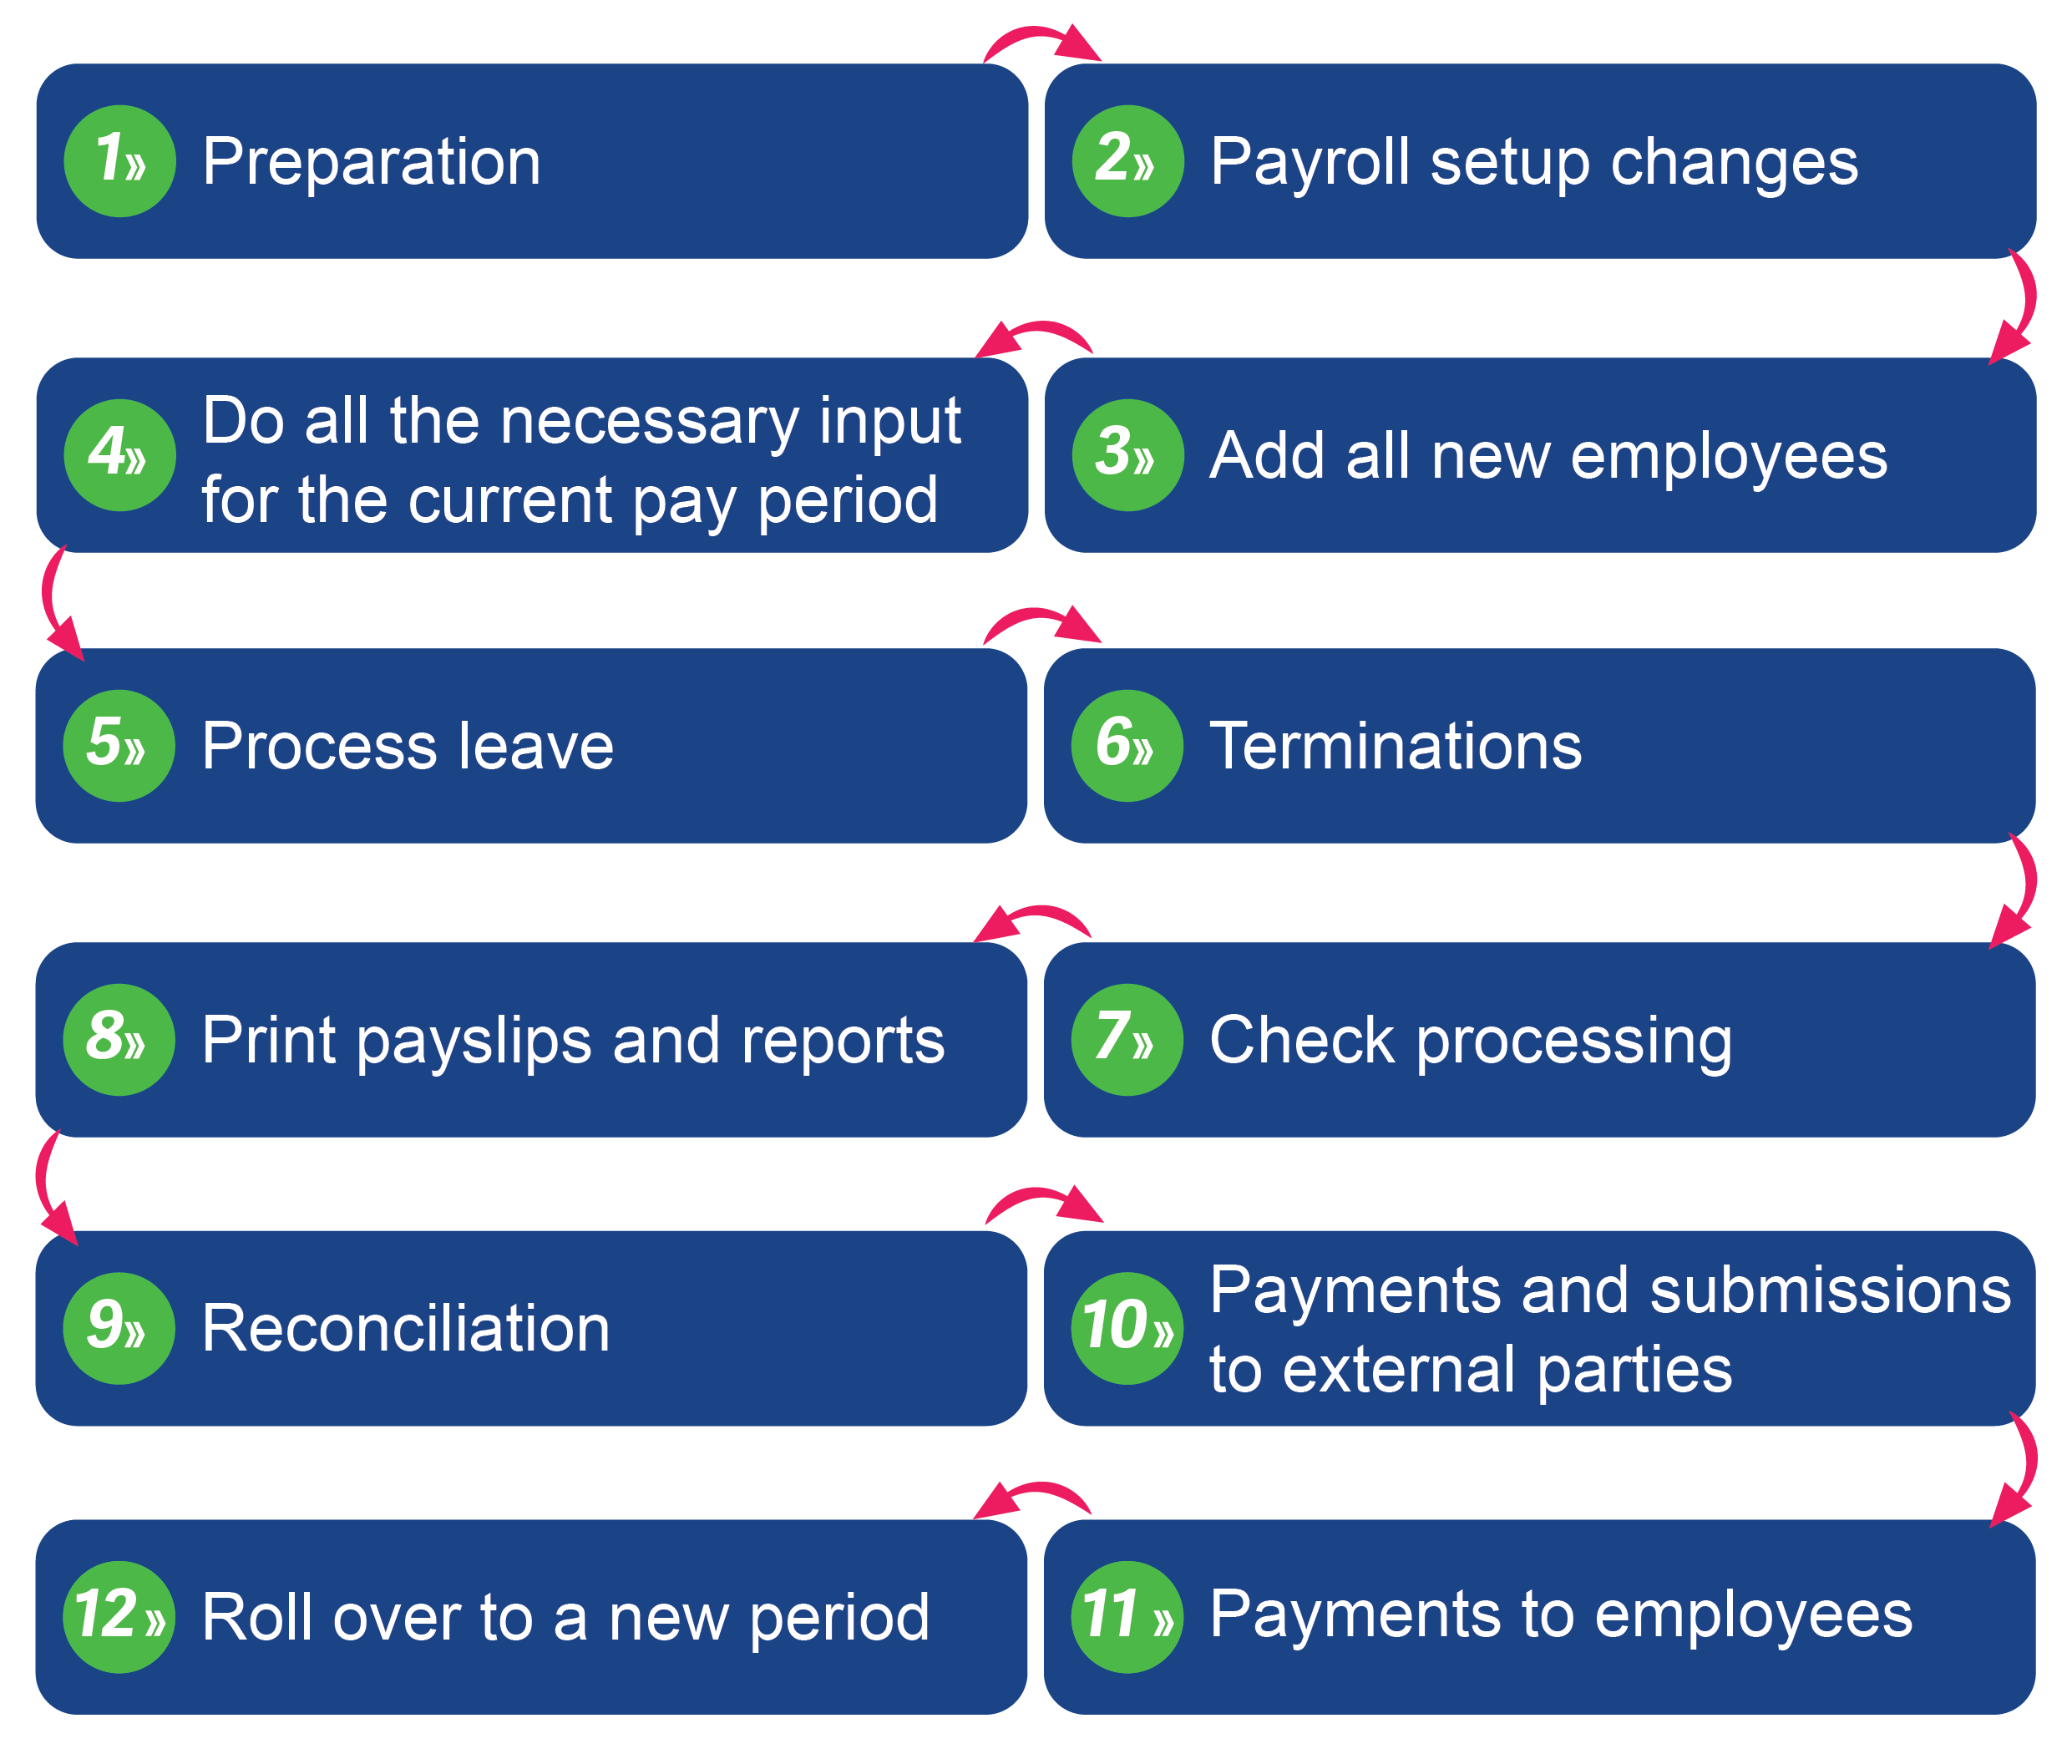 Monthly processing checklist